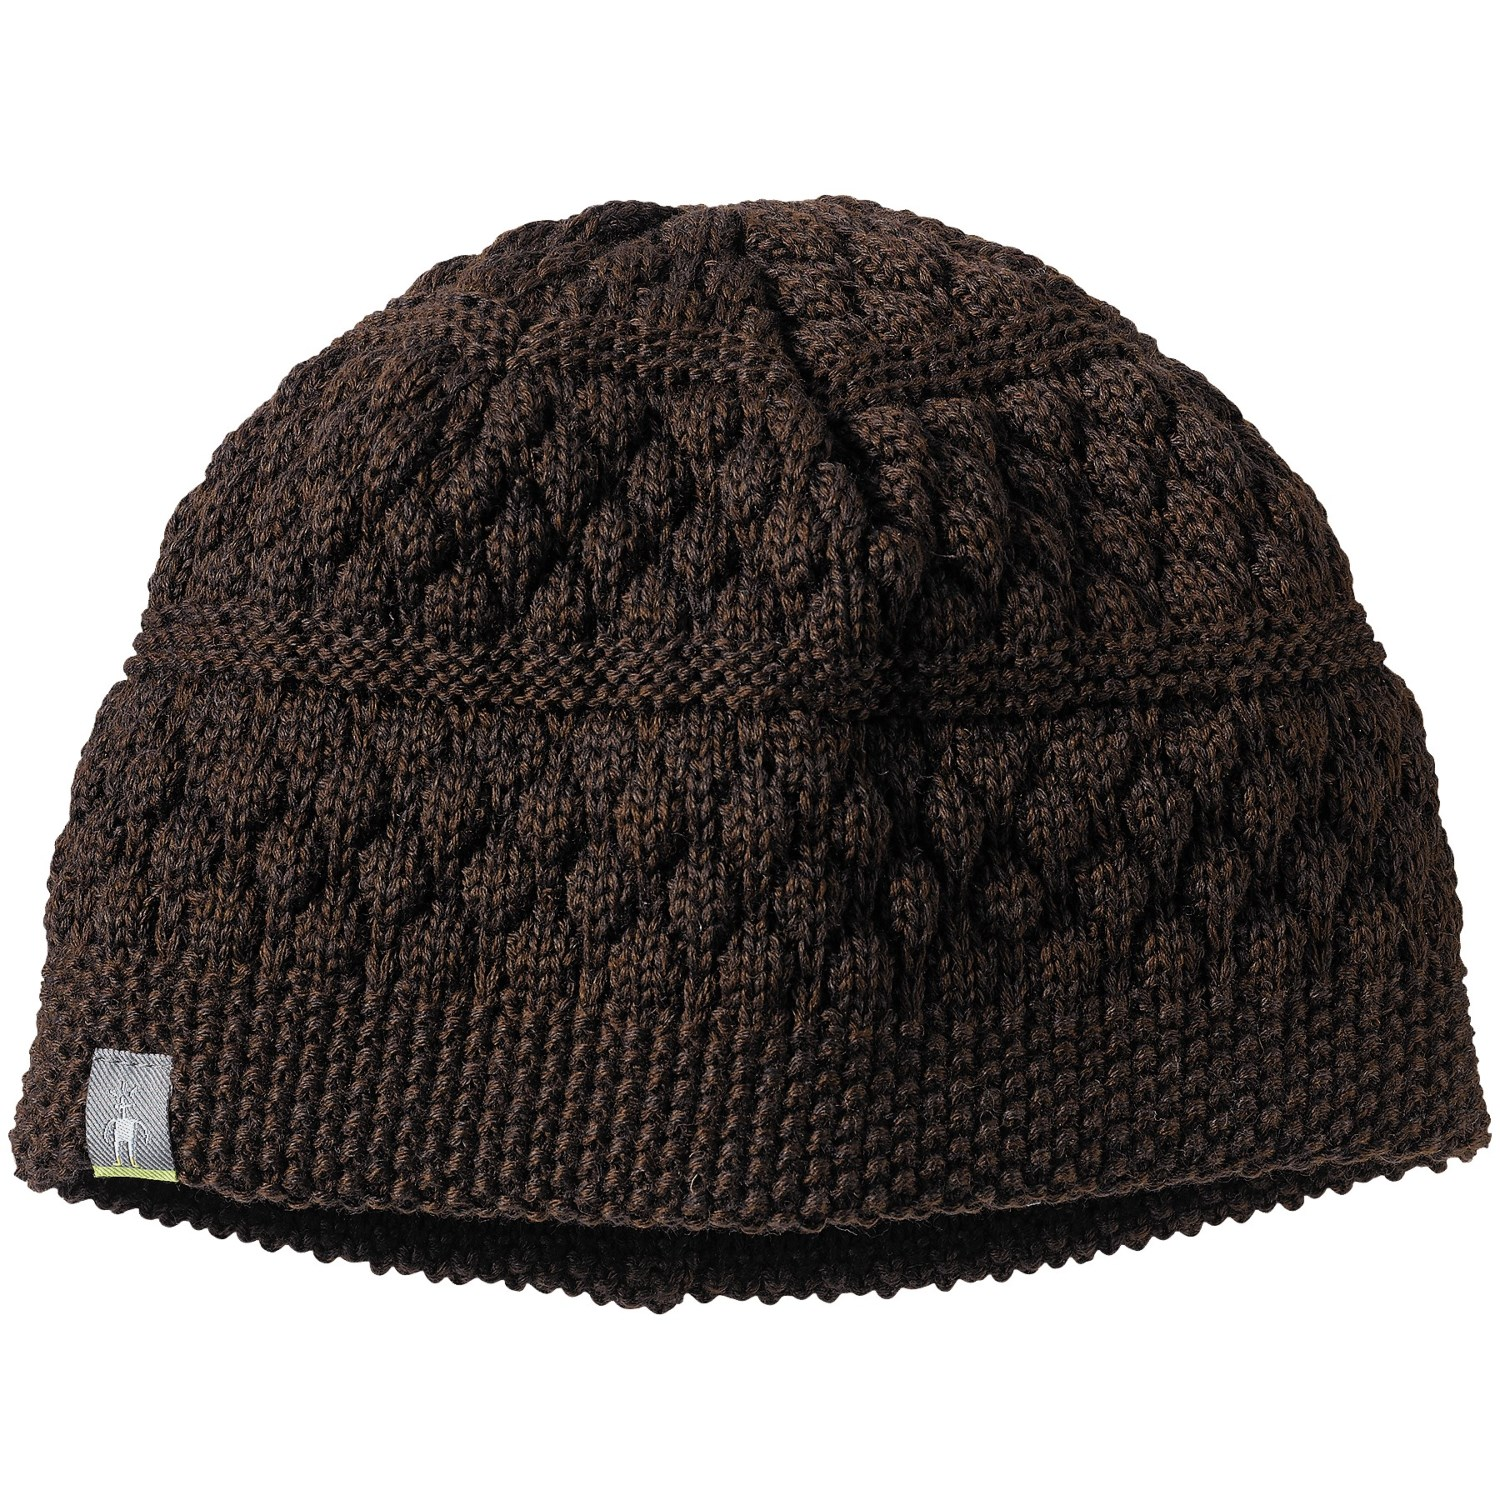 smartwool warmer beanie hat for